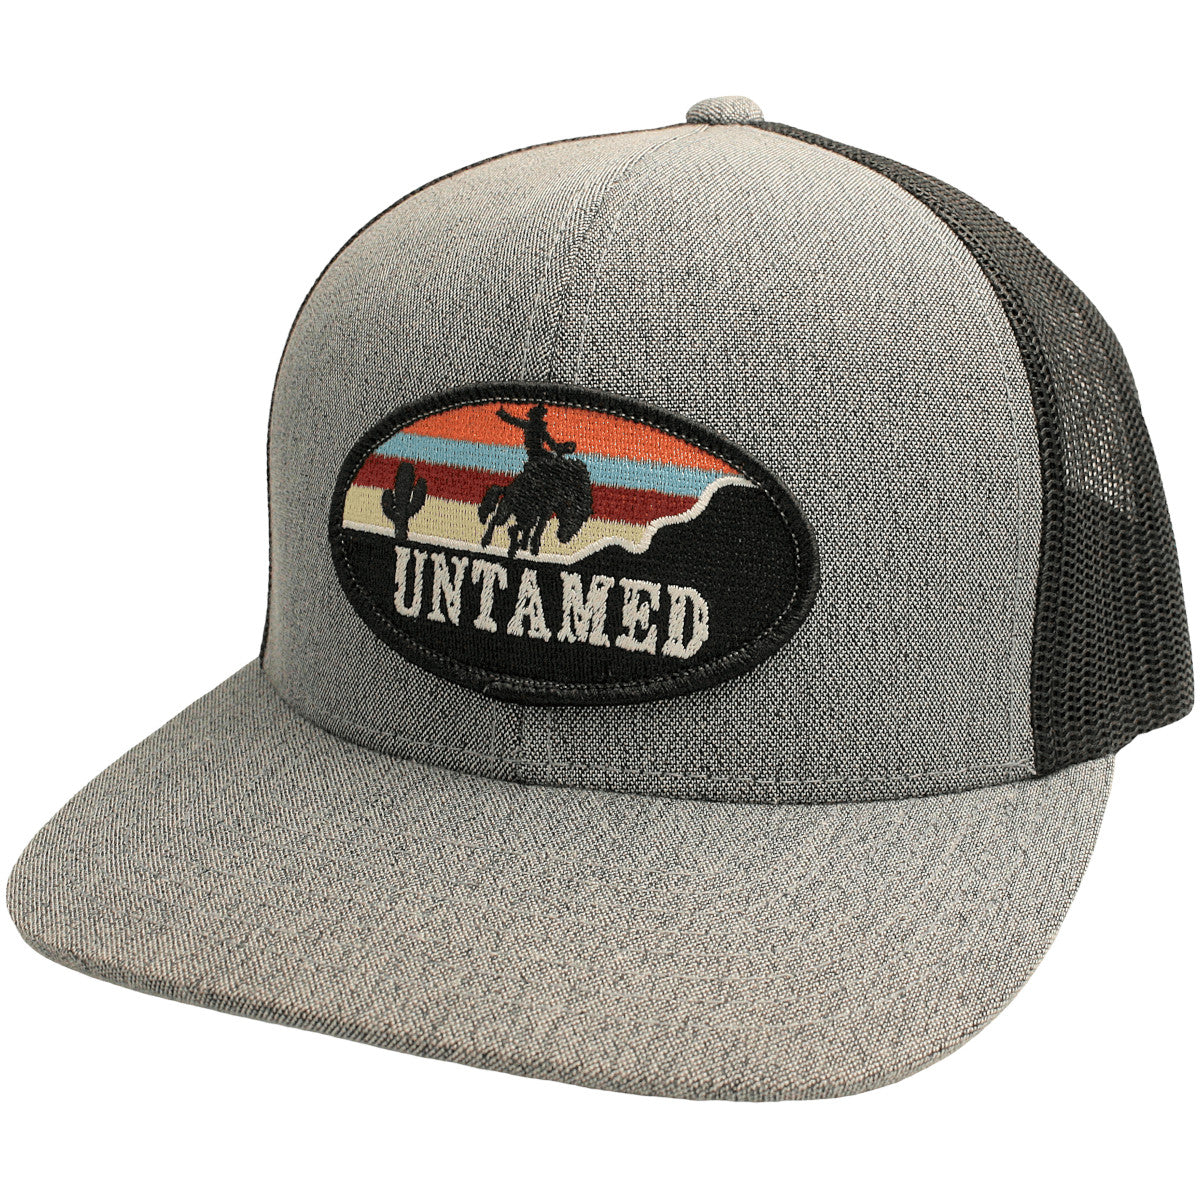 Red Dirt Untamed Cap